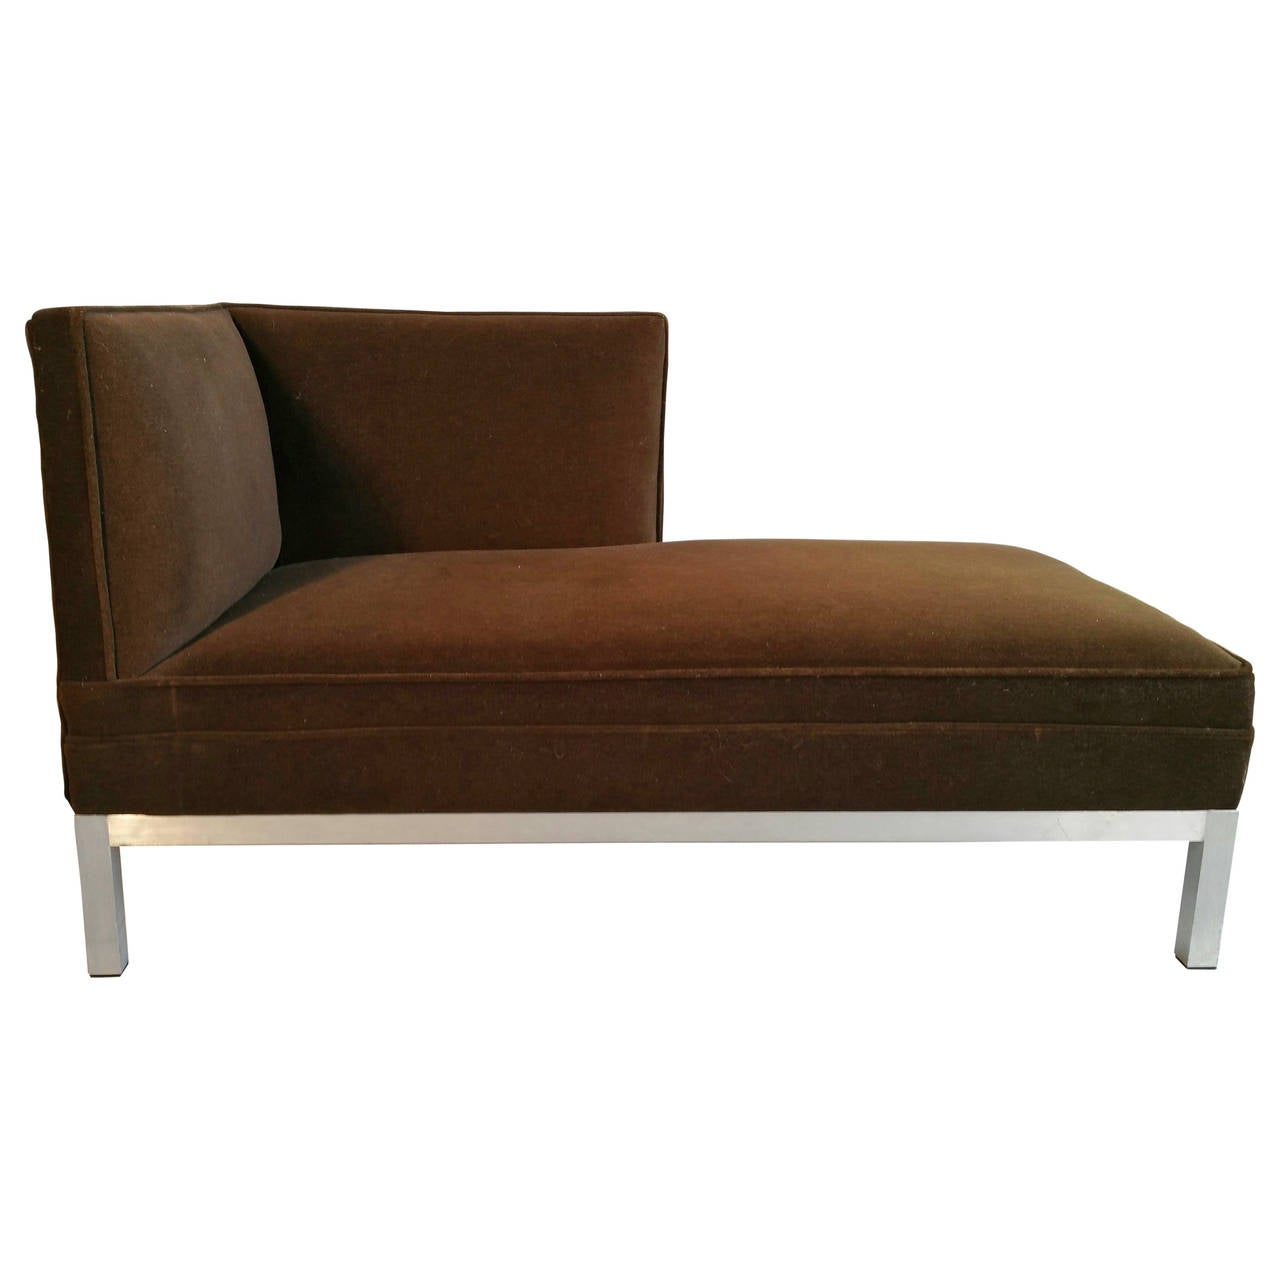 Modernist aluminum and velvet chaise lounge for sale at for Aluminum chaise lounges